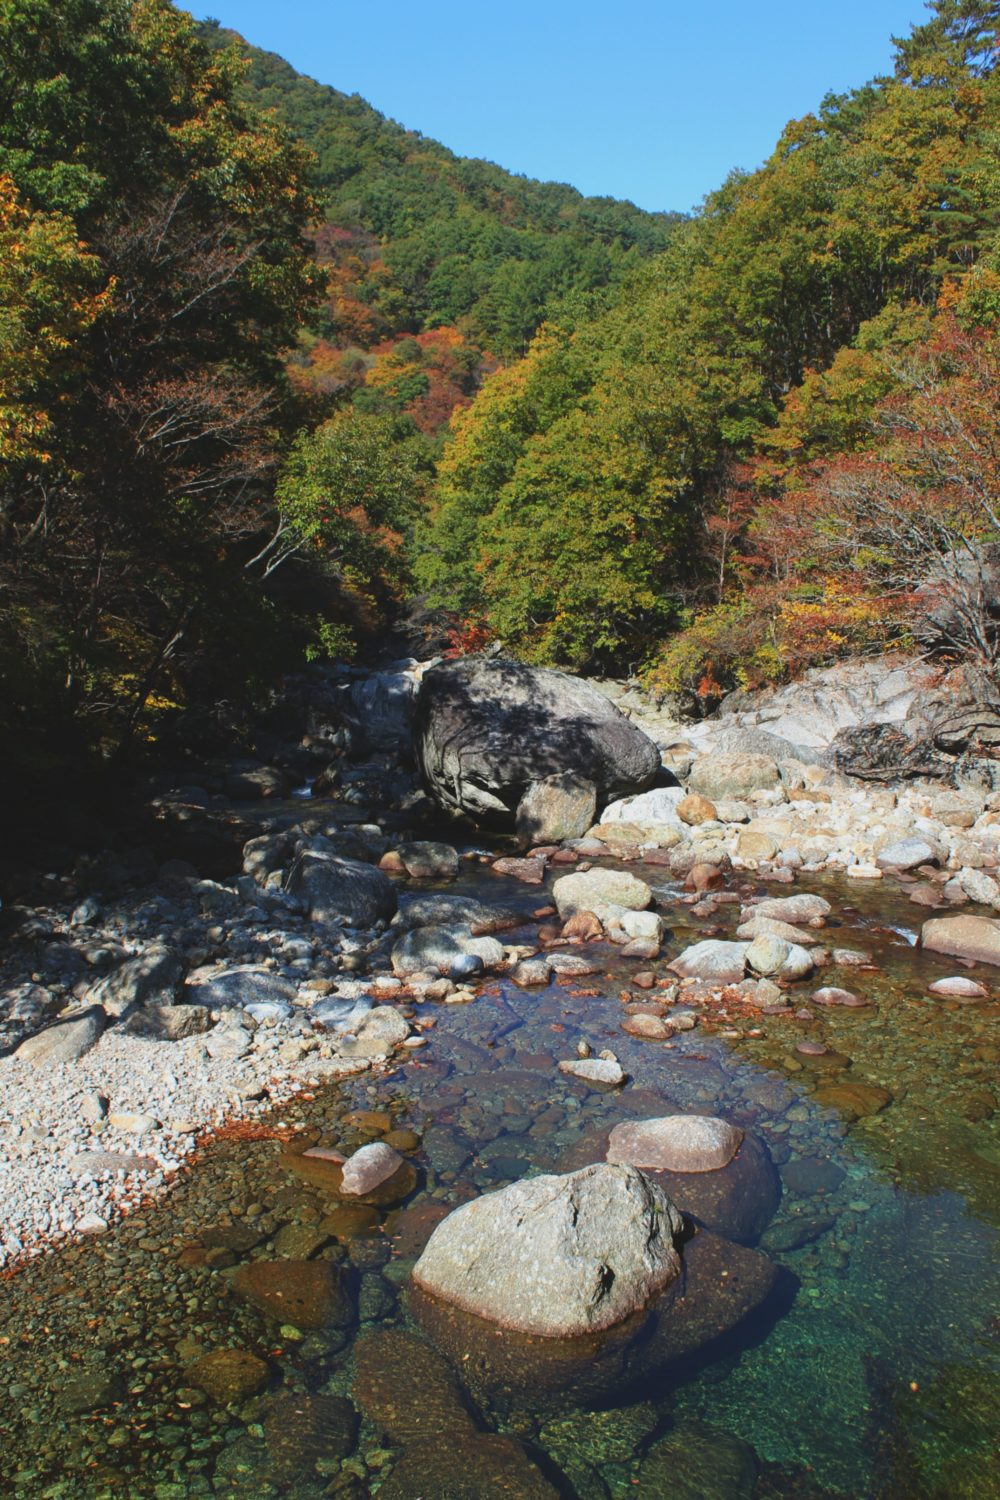 One of the things you have to take advantage of in Korea is the mountains, and hiking Jirisan is one of the best ways to do it.